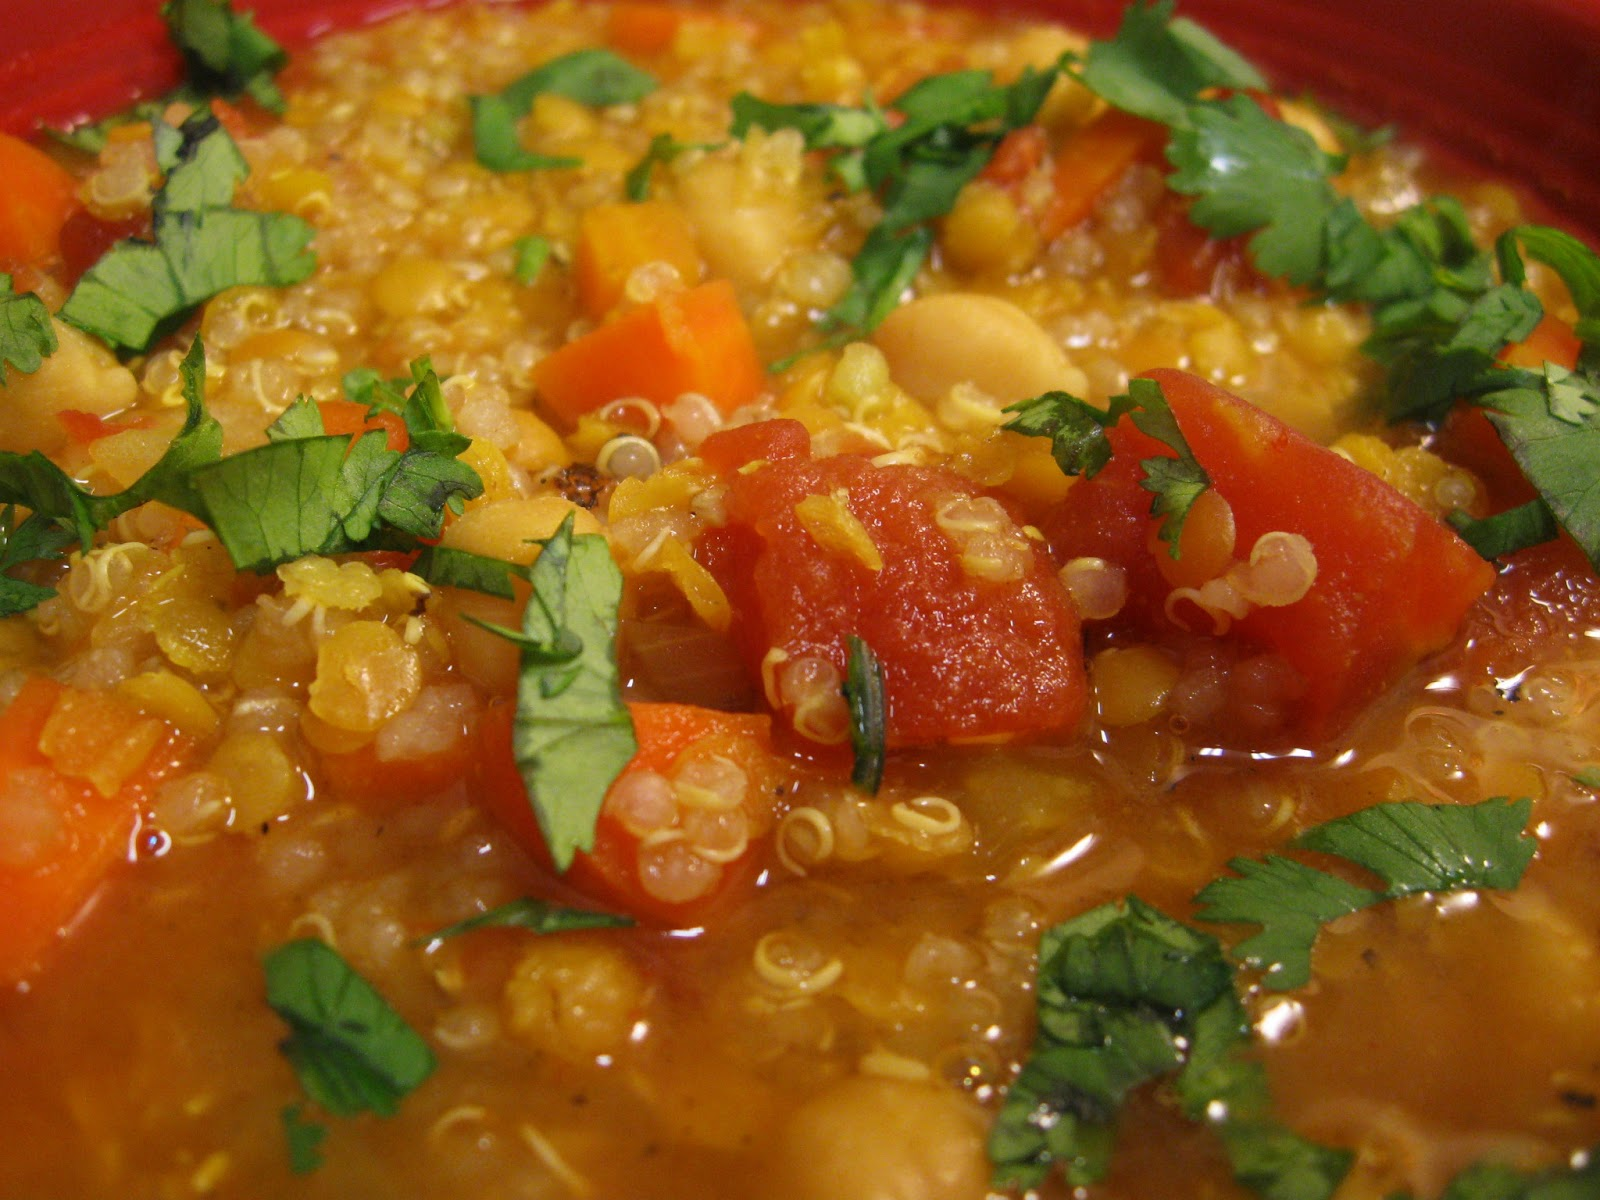 Above Hoarded Gold: Curried Lentil, Chickpea, and Quinoa Soup